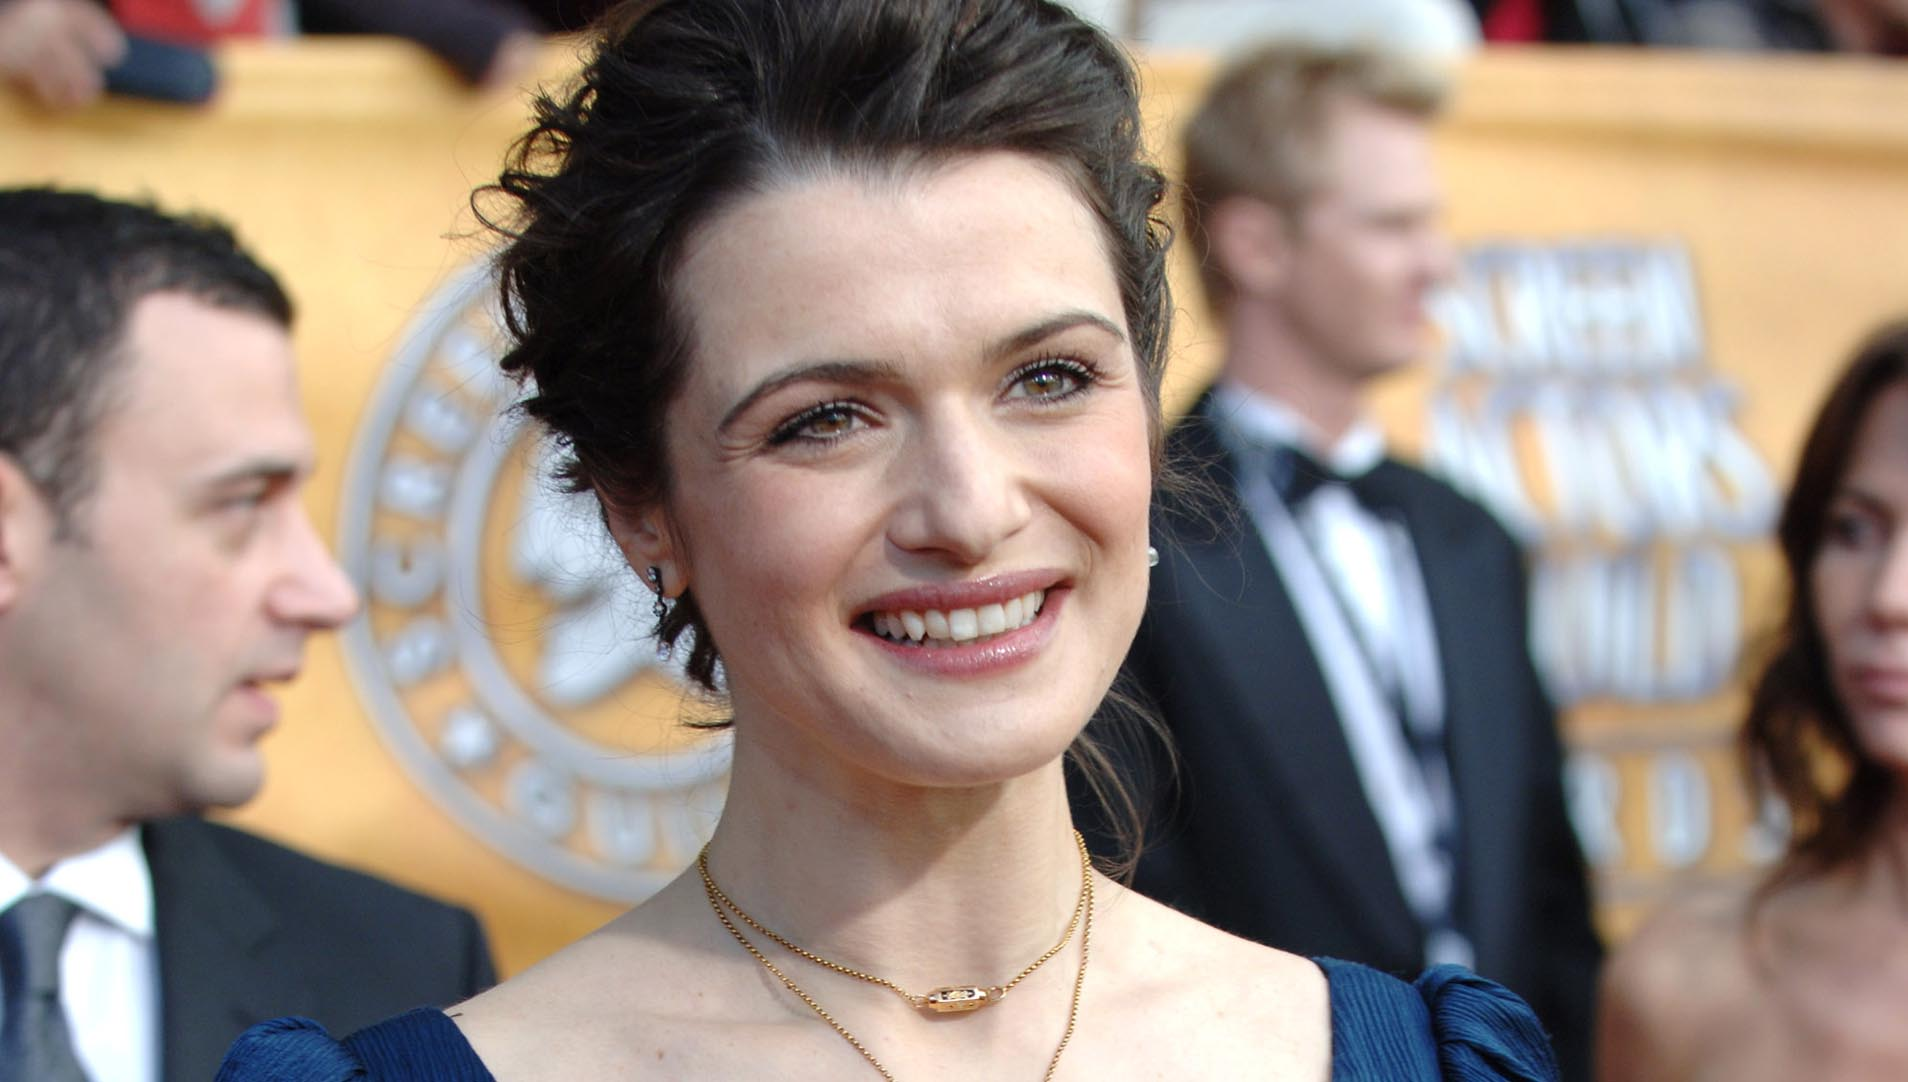 Rachel Weisz at the 25th Annual Screen Actors Guild Awards.